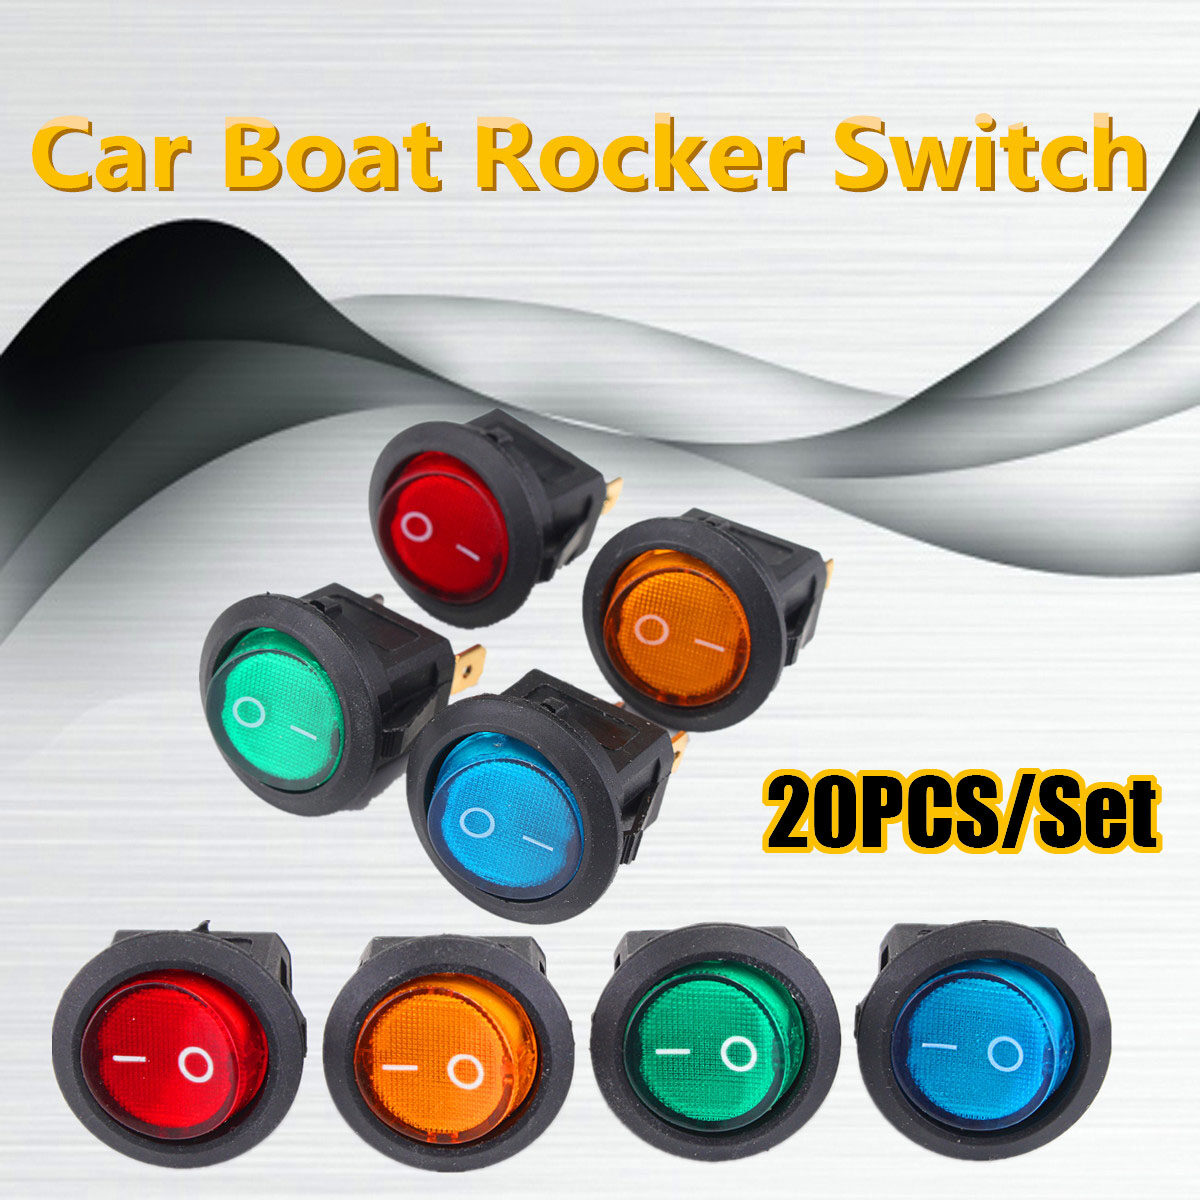 Green On//Off Lighted LED Round Rocker Switch Car Dashboard Dash SPST 12V